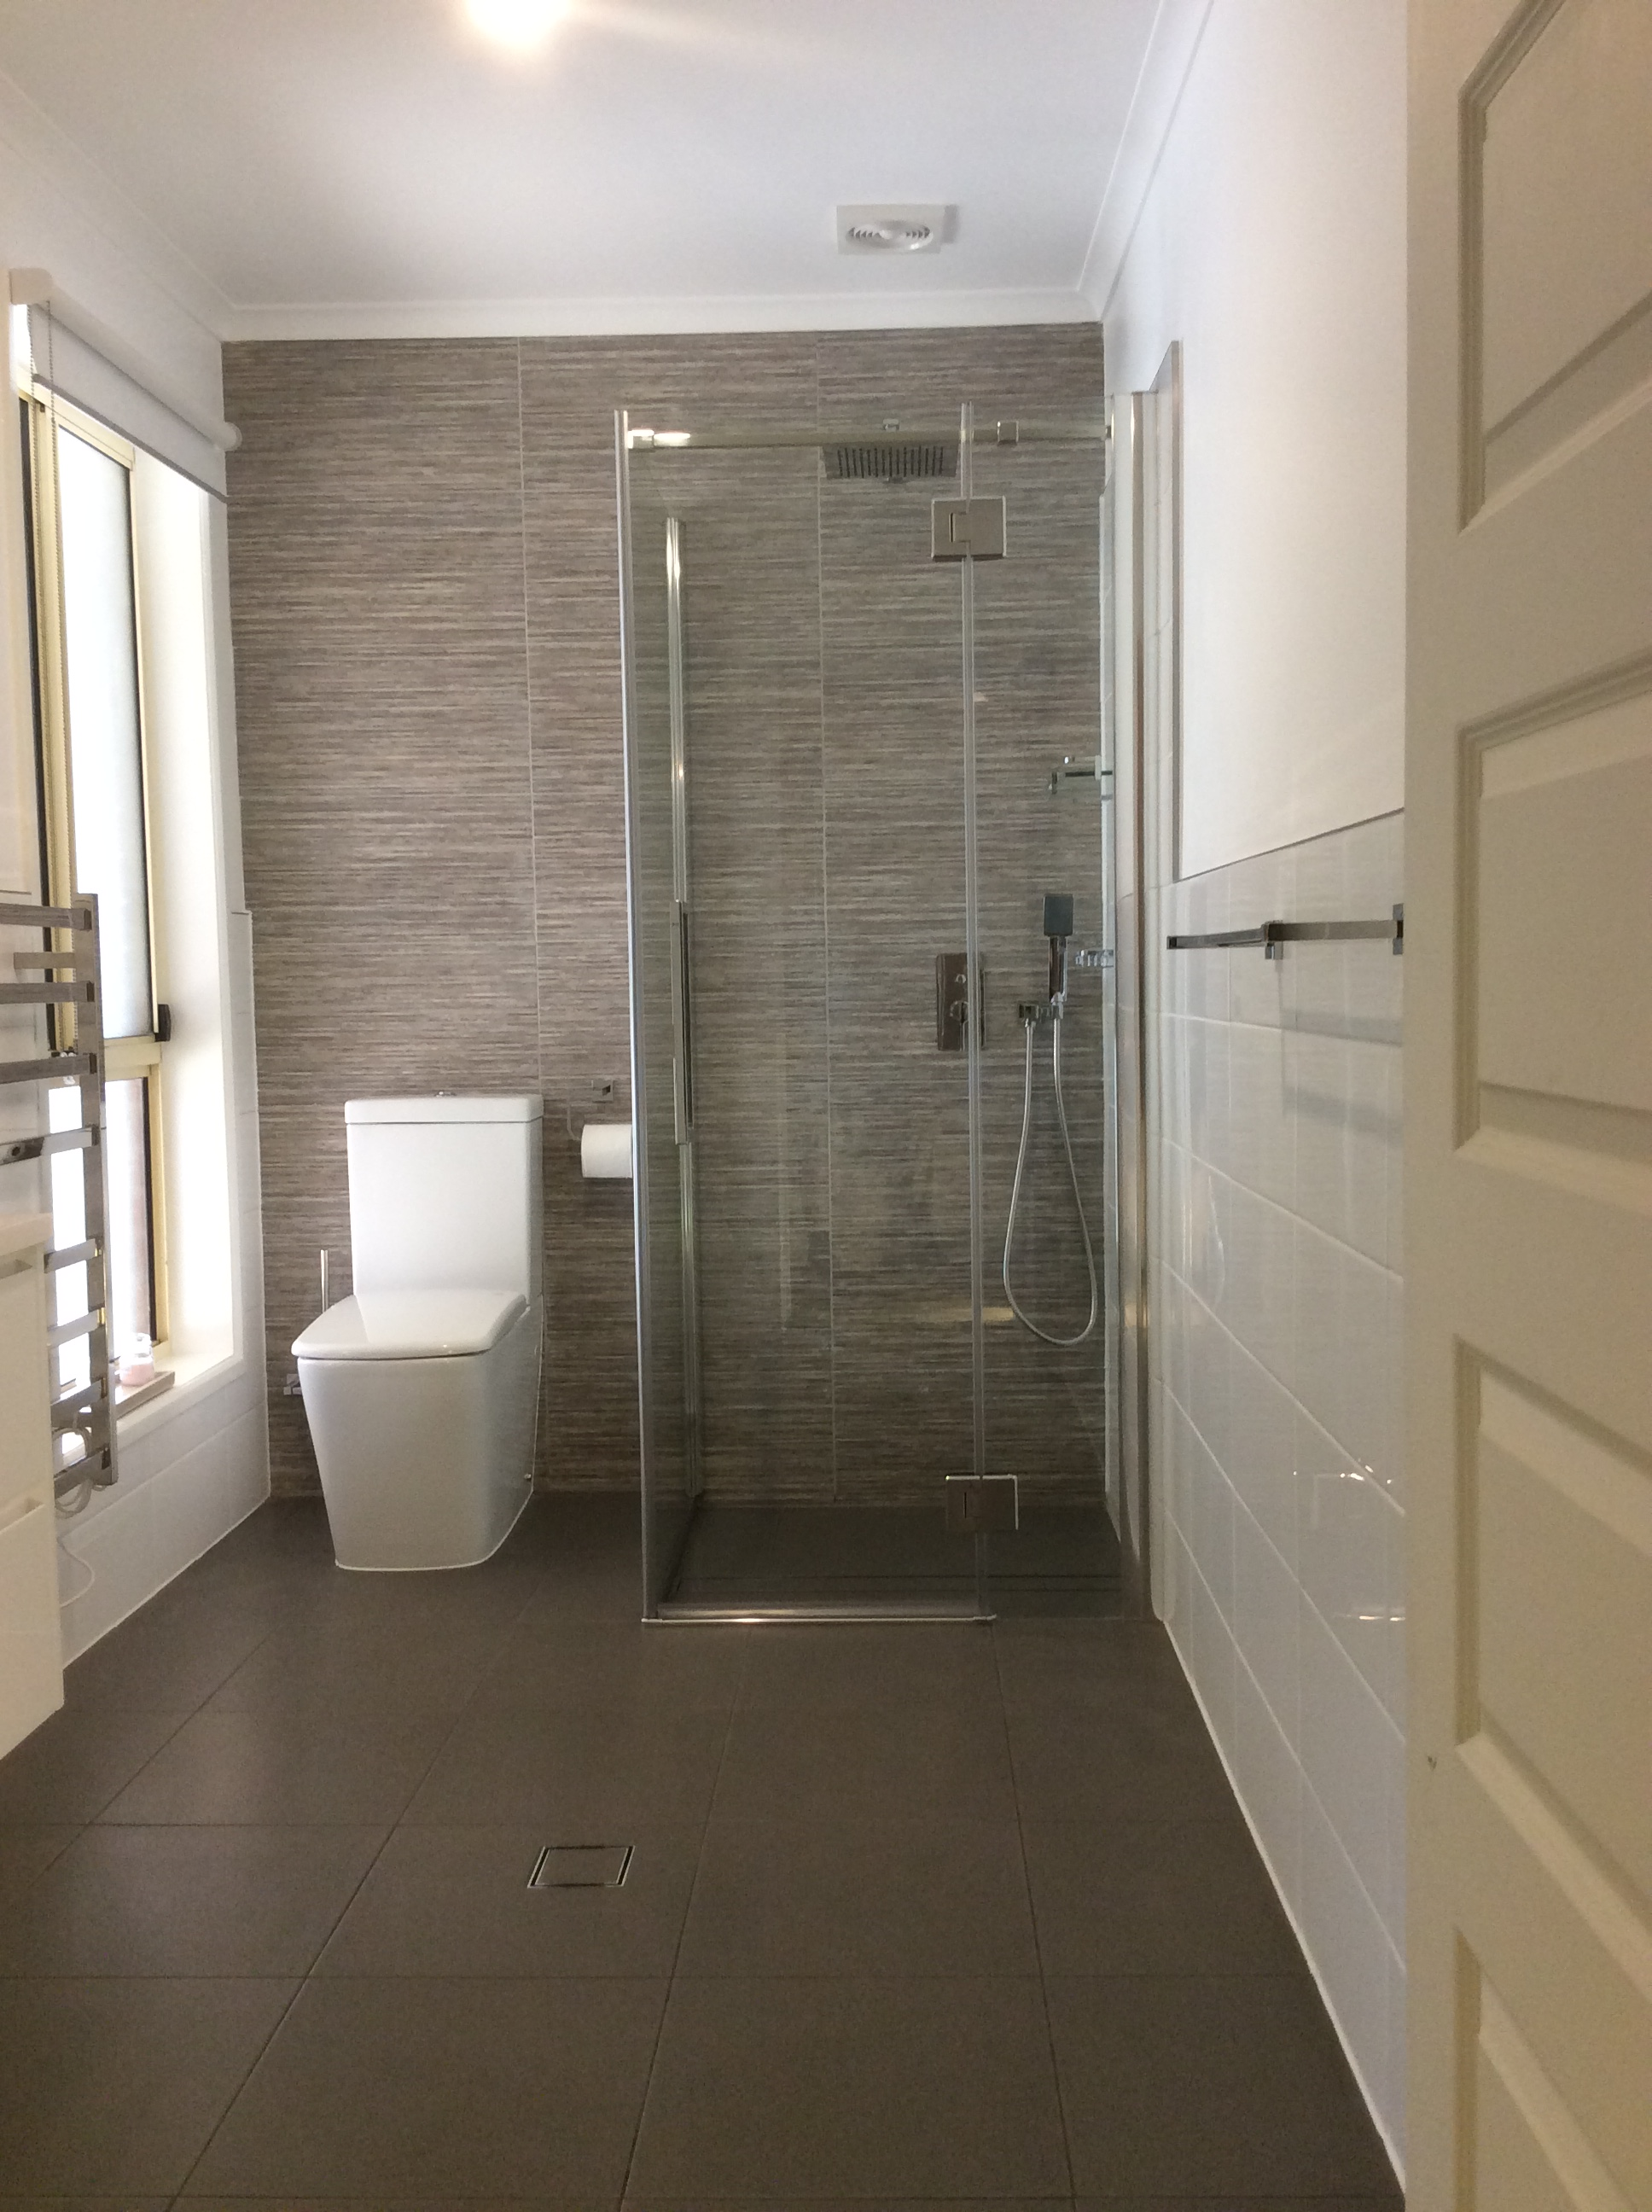 Completed bathroom renovation